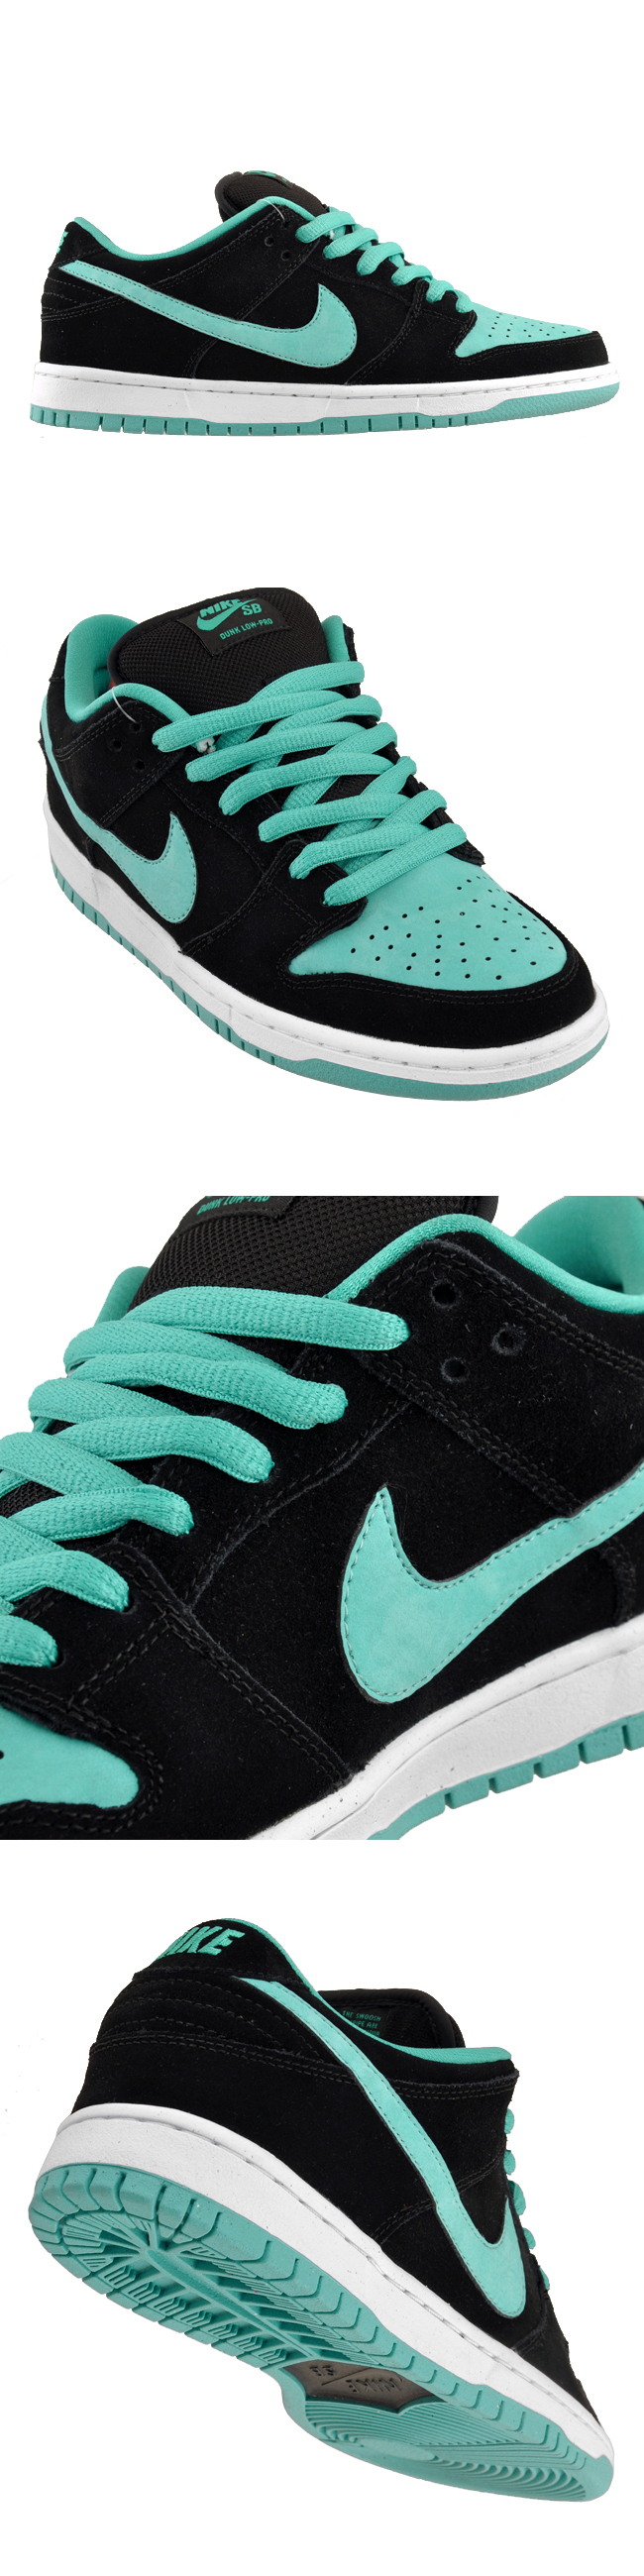 """innovative design f5c30 ab27d Nike Dunk Low Pro SB """"Tiffany J-Pack"""" Available Now"""